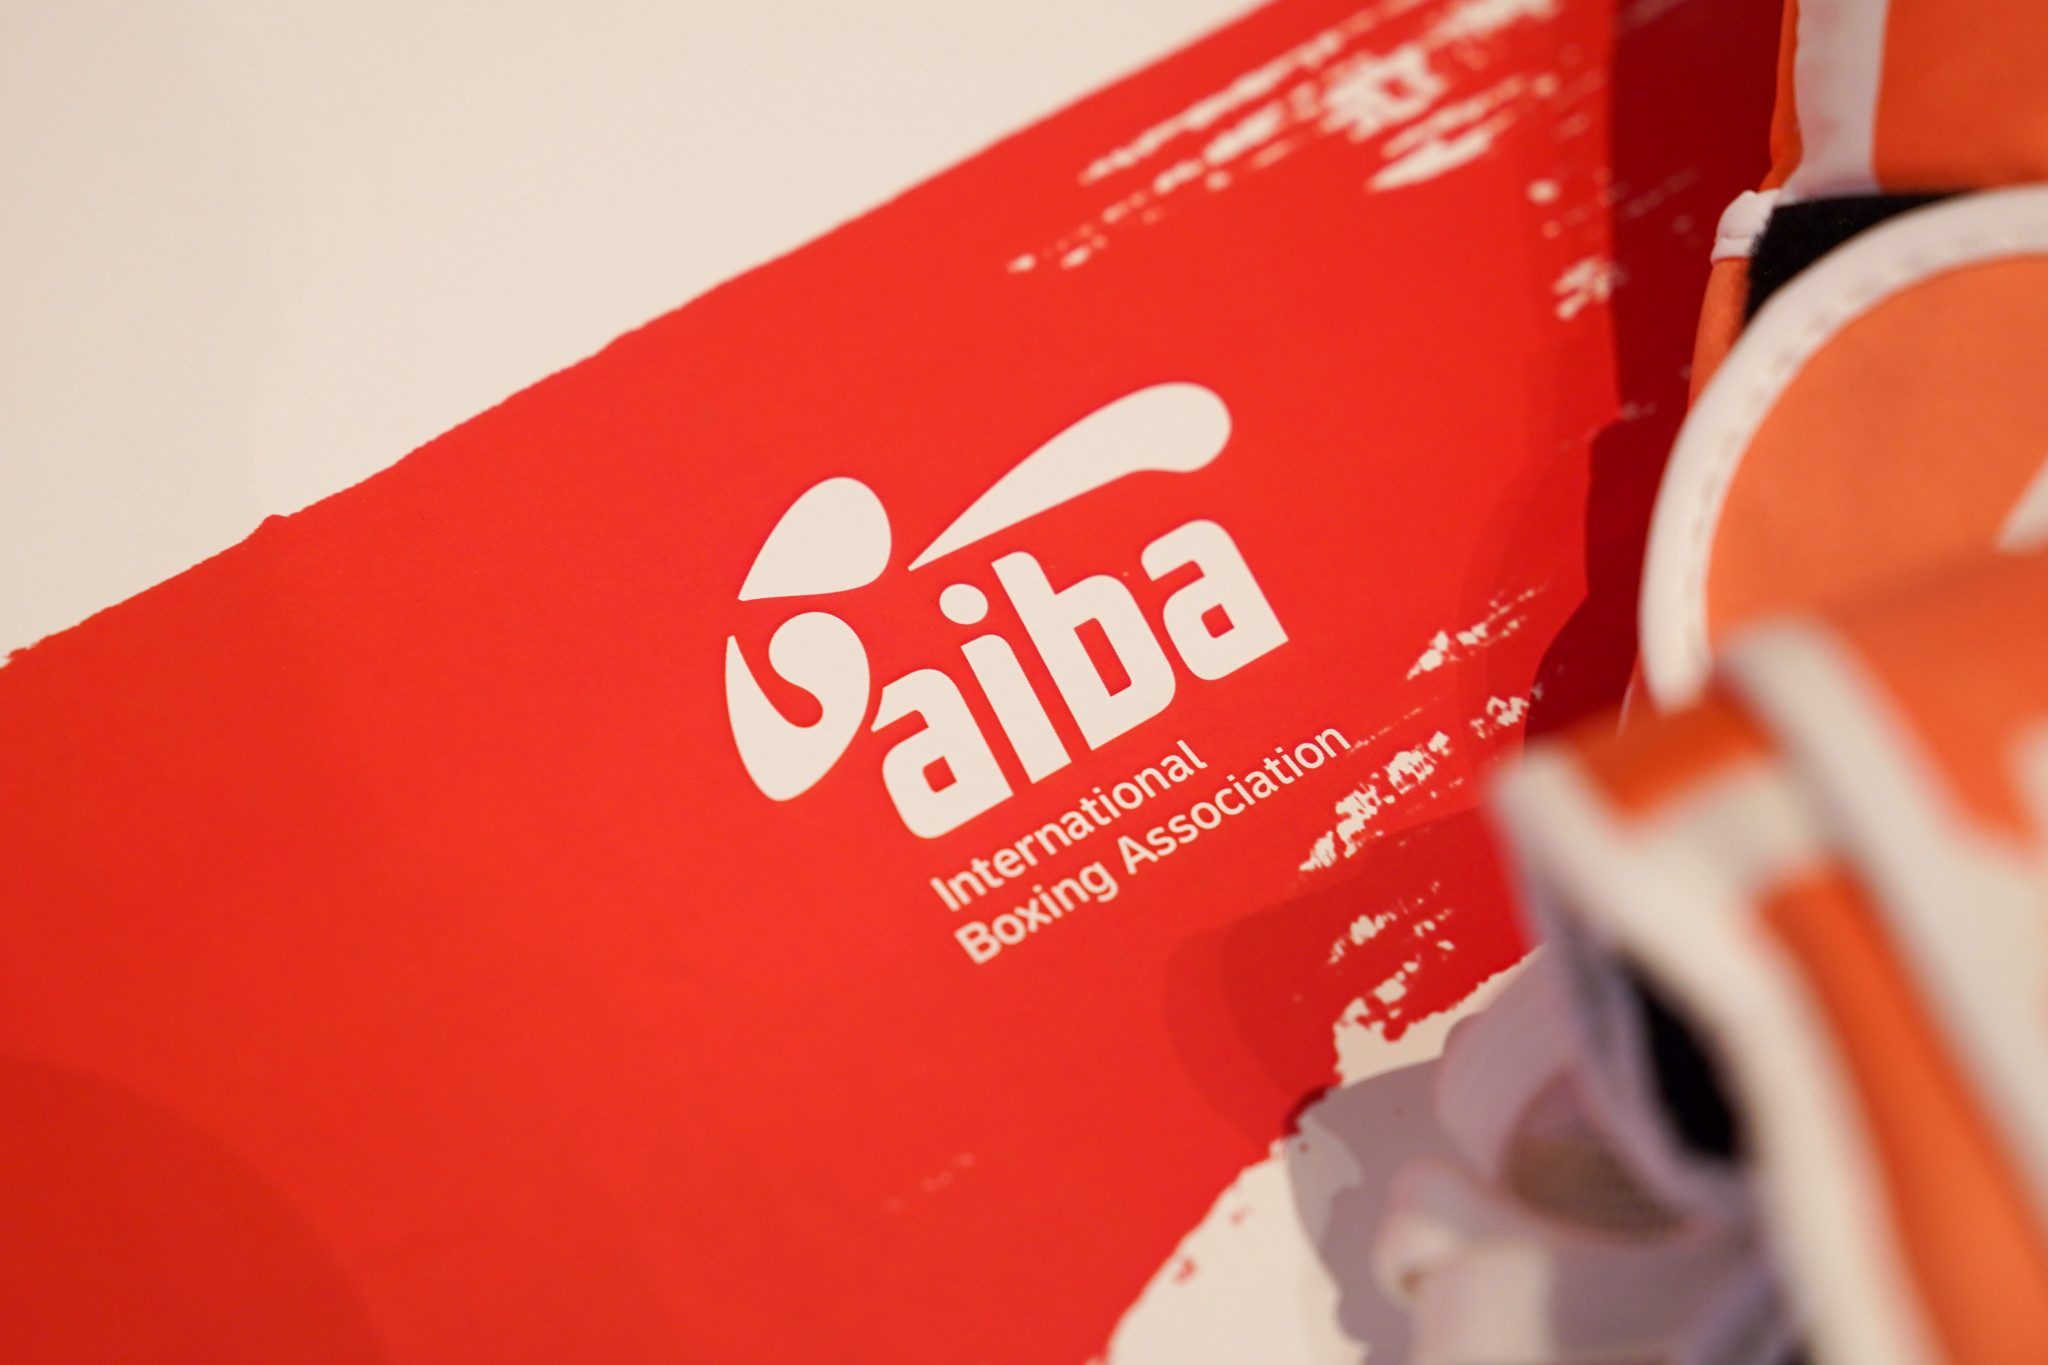 AIBA are hoping to reform the organisation and move on from a troubled past ©AIBA